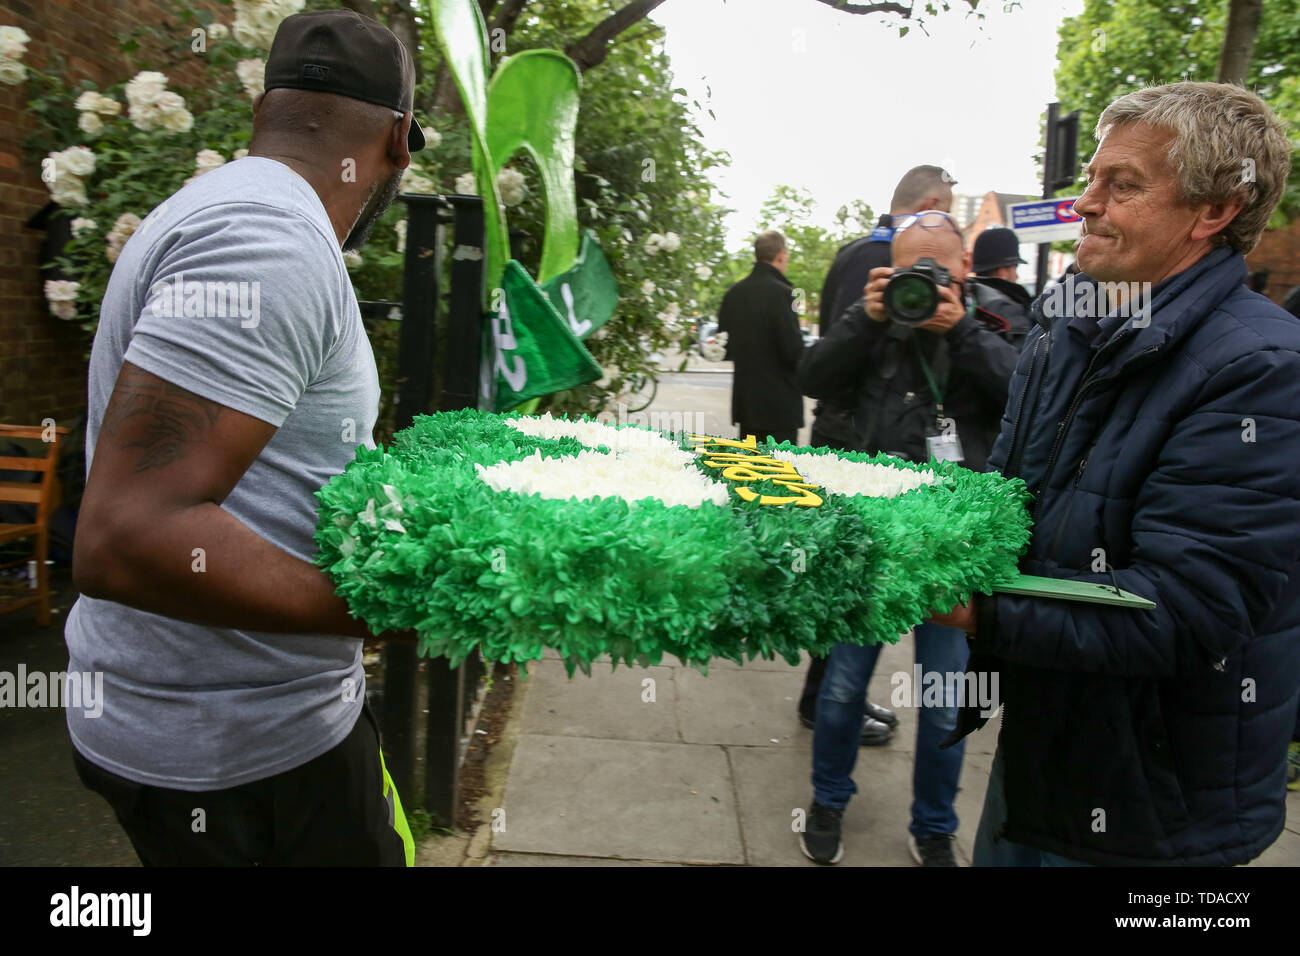 North Kensington, West London. UK 14 Jun 2019 - Florists brings floral tributes at St Helen's Church to commemorate the second anniversary of the Grenfell Tower fire service. On 14 June 2017, just before 1:00Êam a fire broke out in the kitchen of the fourth floor flat at the 24-storey residential tower block in North Kensington, West London, which took the lives of 72 people. More than 70 others were injured and 223 people escaped.  Credit: Dinendra Haria/Alamy Live News - Stock Image